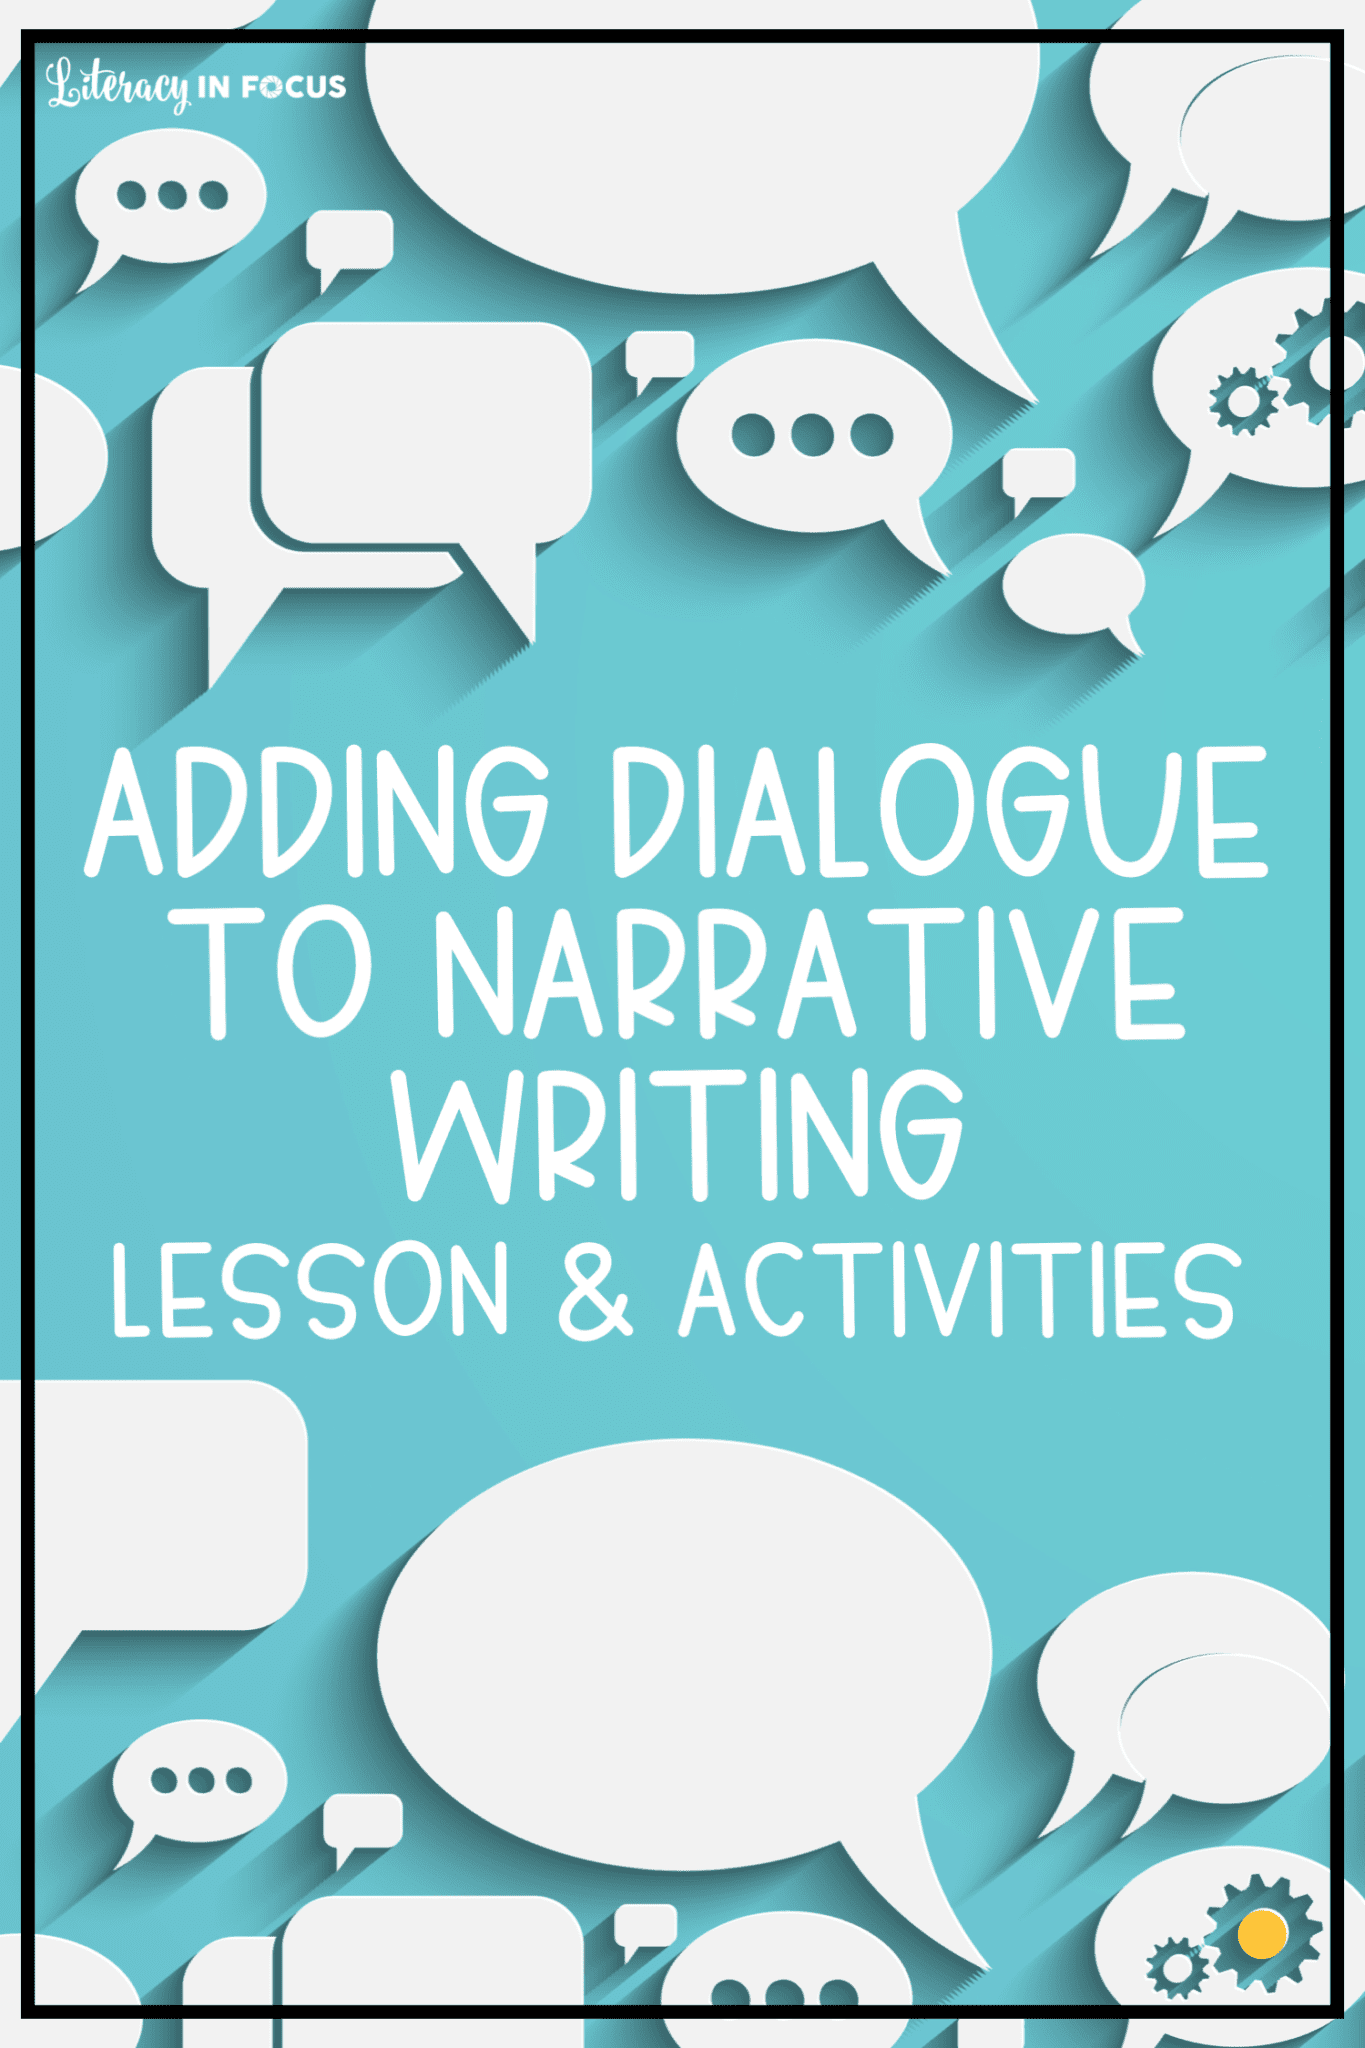 Dialogue Writing Activities and Lesson Plan